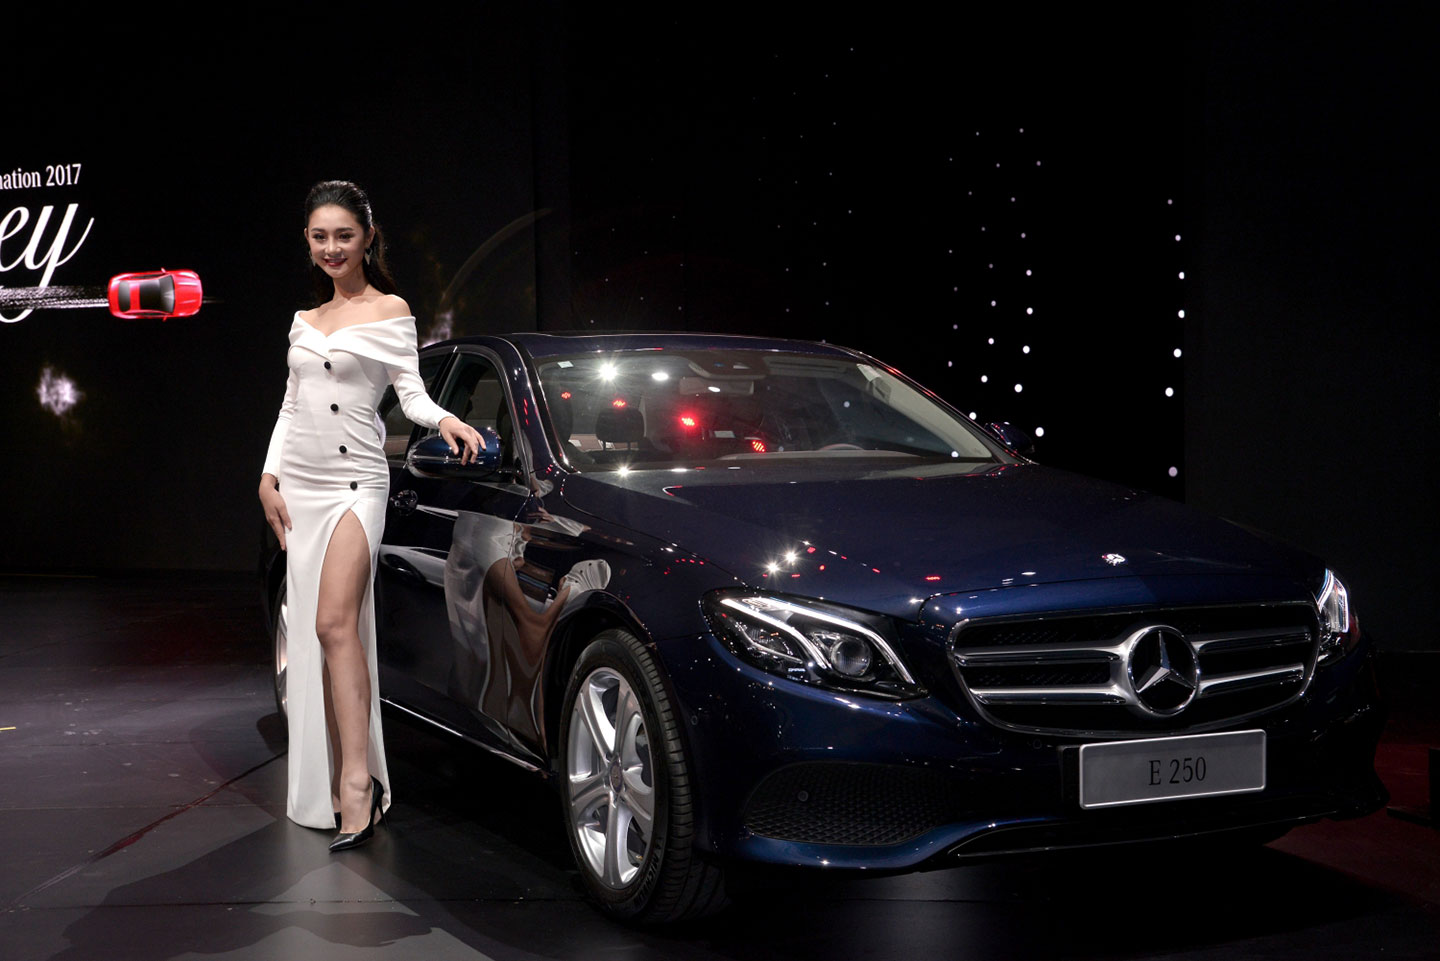 mercedes-benz-fascination-2017-nguoidep-14.jpg